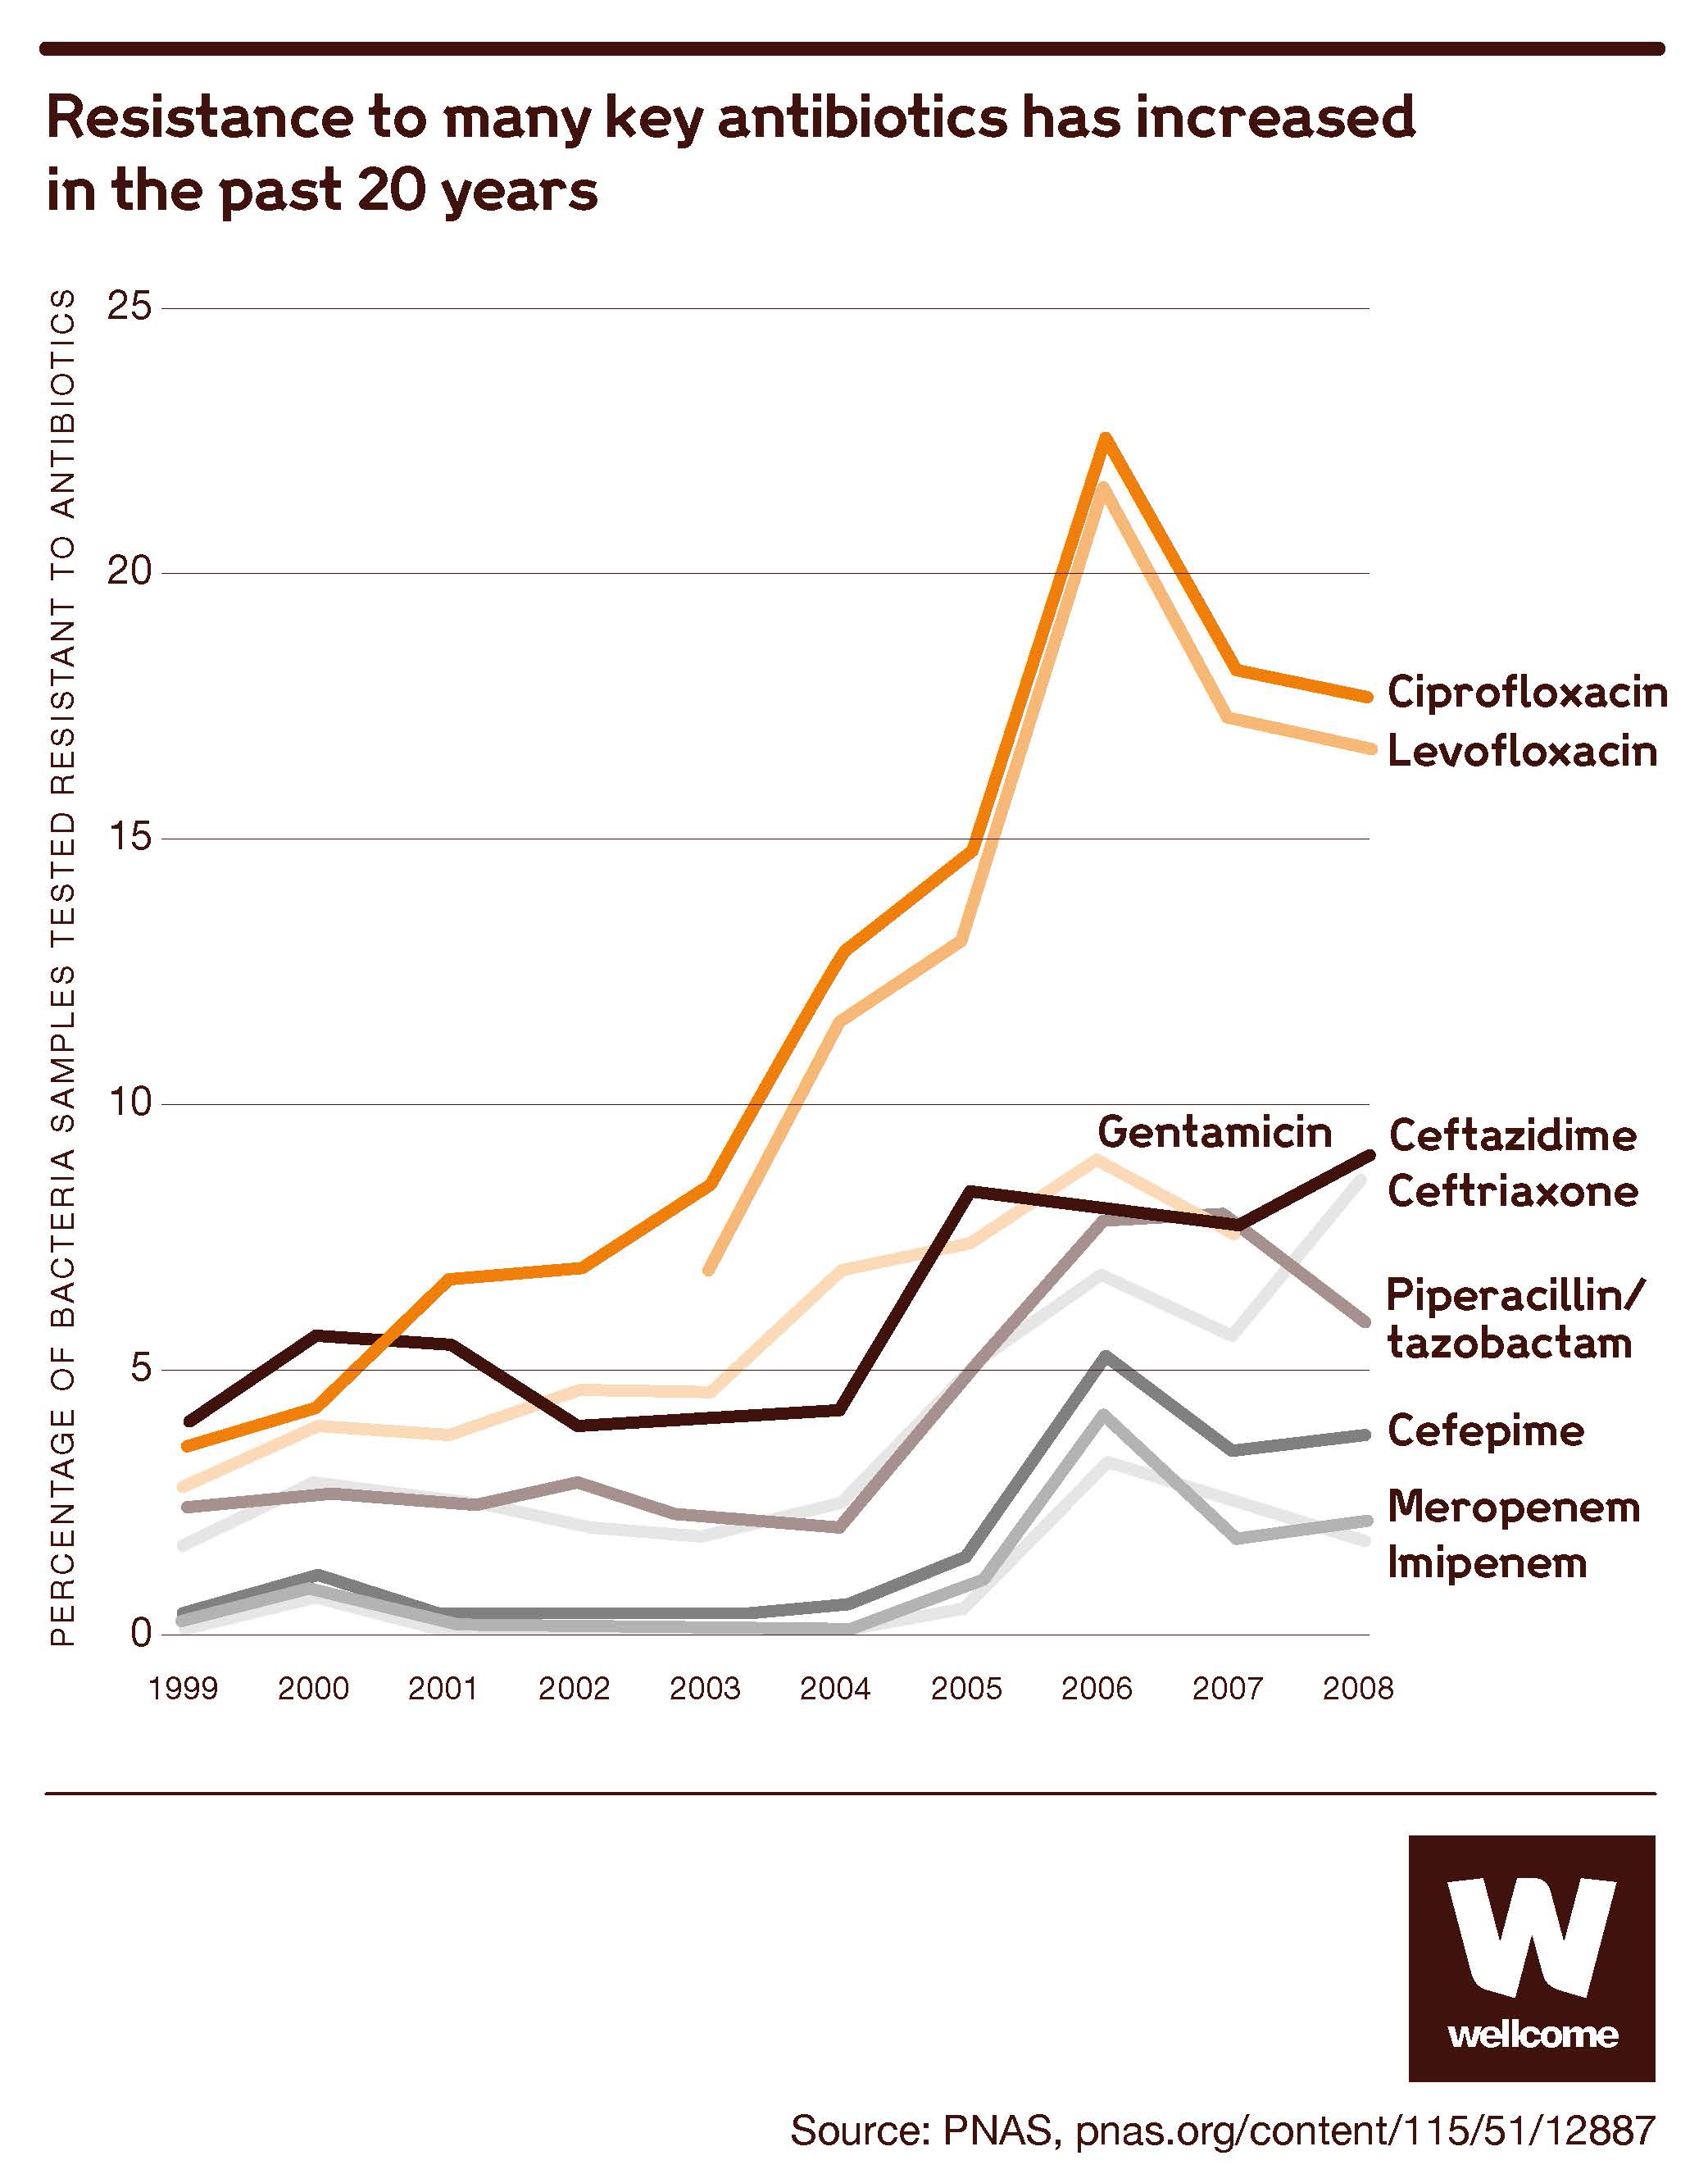 Graph showing how much resistance to key antibiotics has increased in the past 20 years.